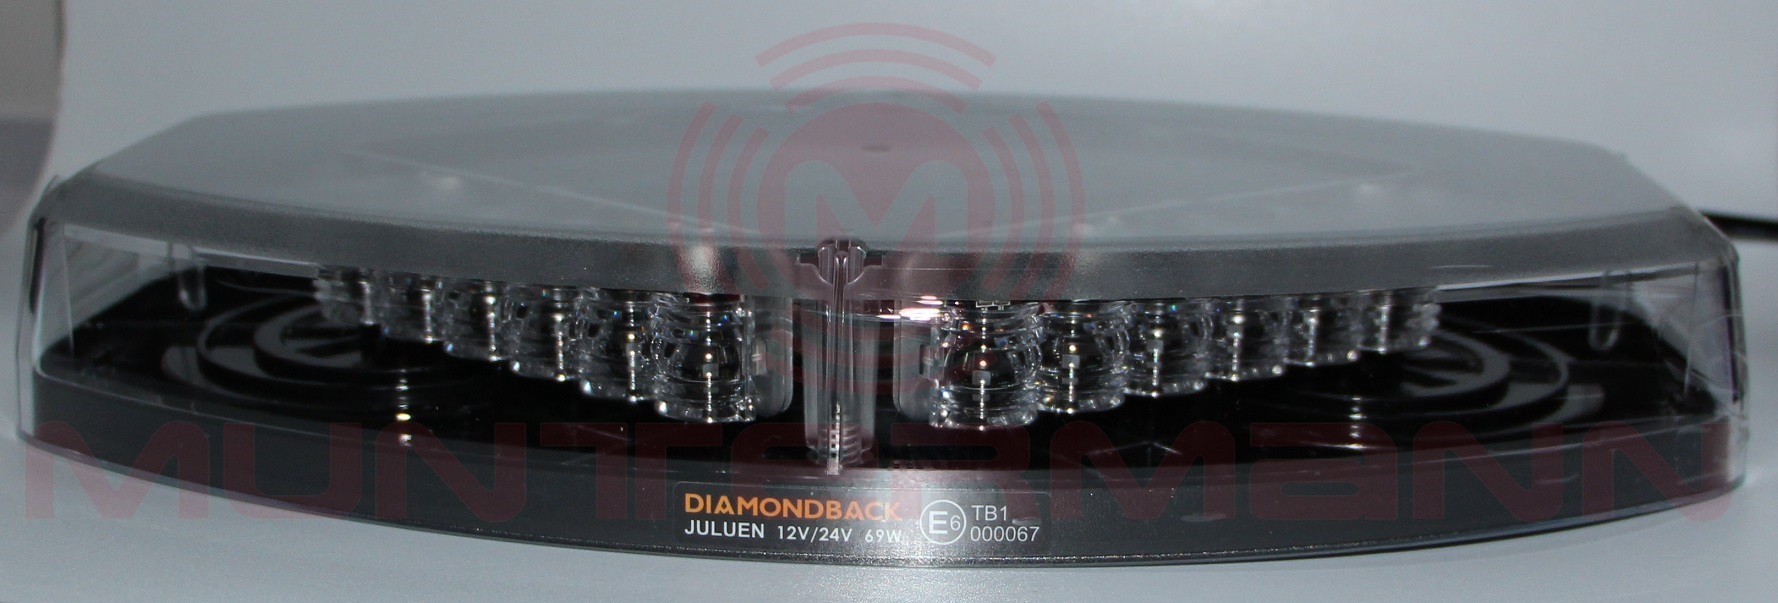 Axixtech DiamondBack Mini LED Lichtbalken - MUNTERMANN